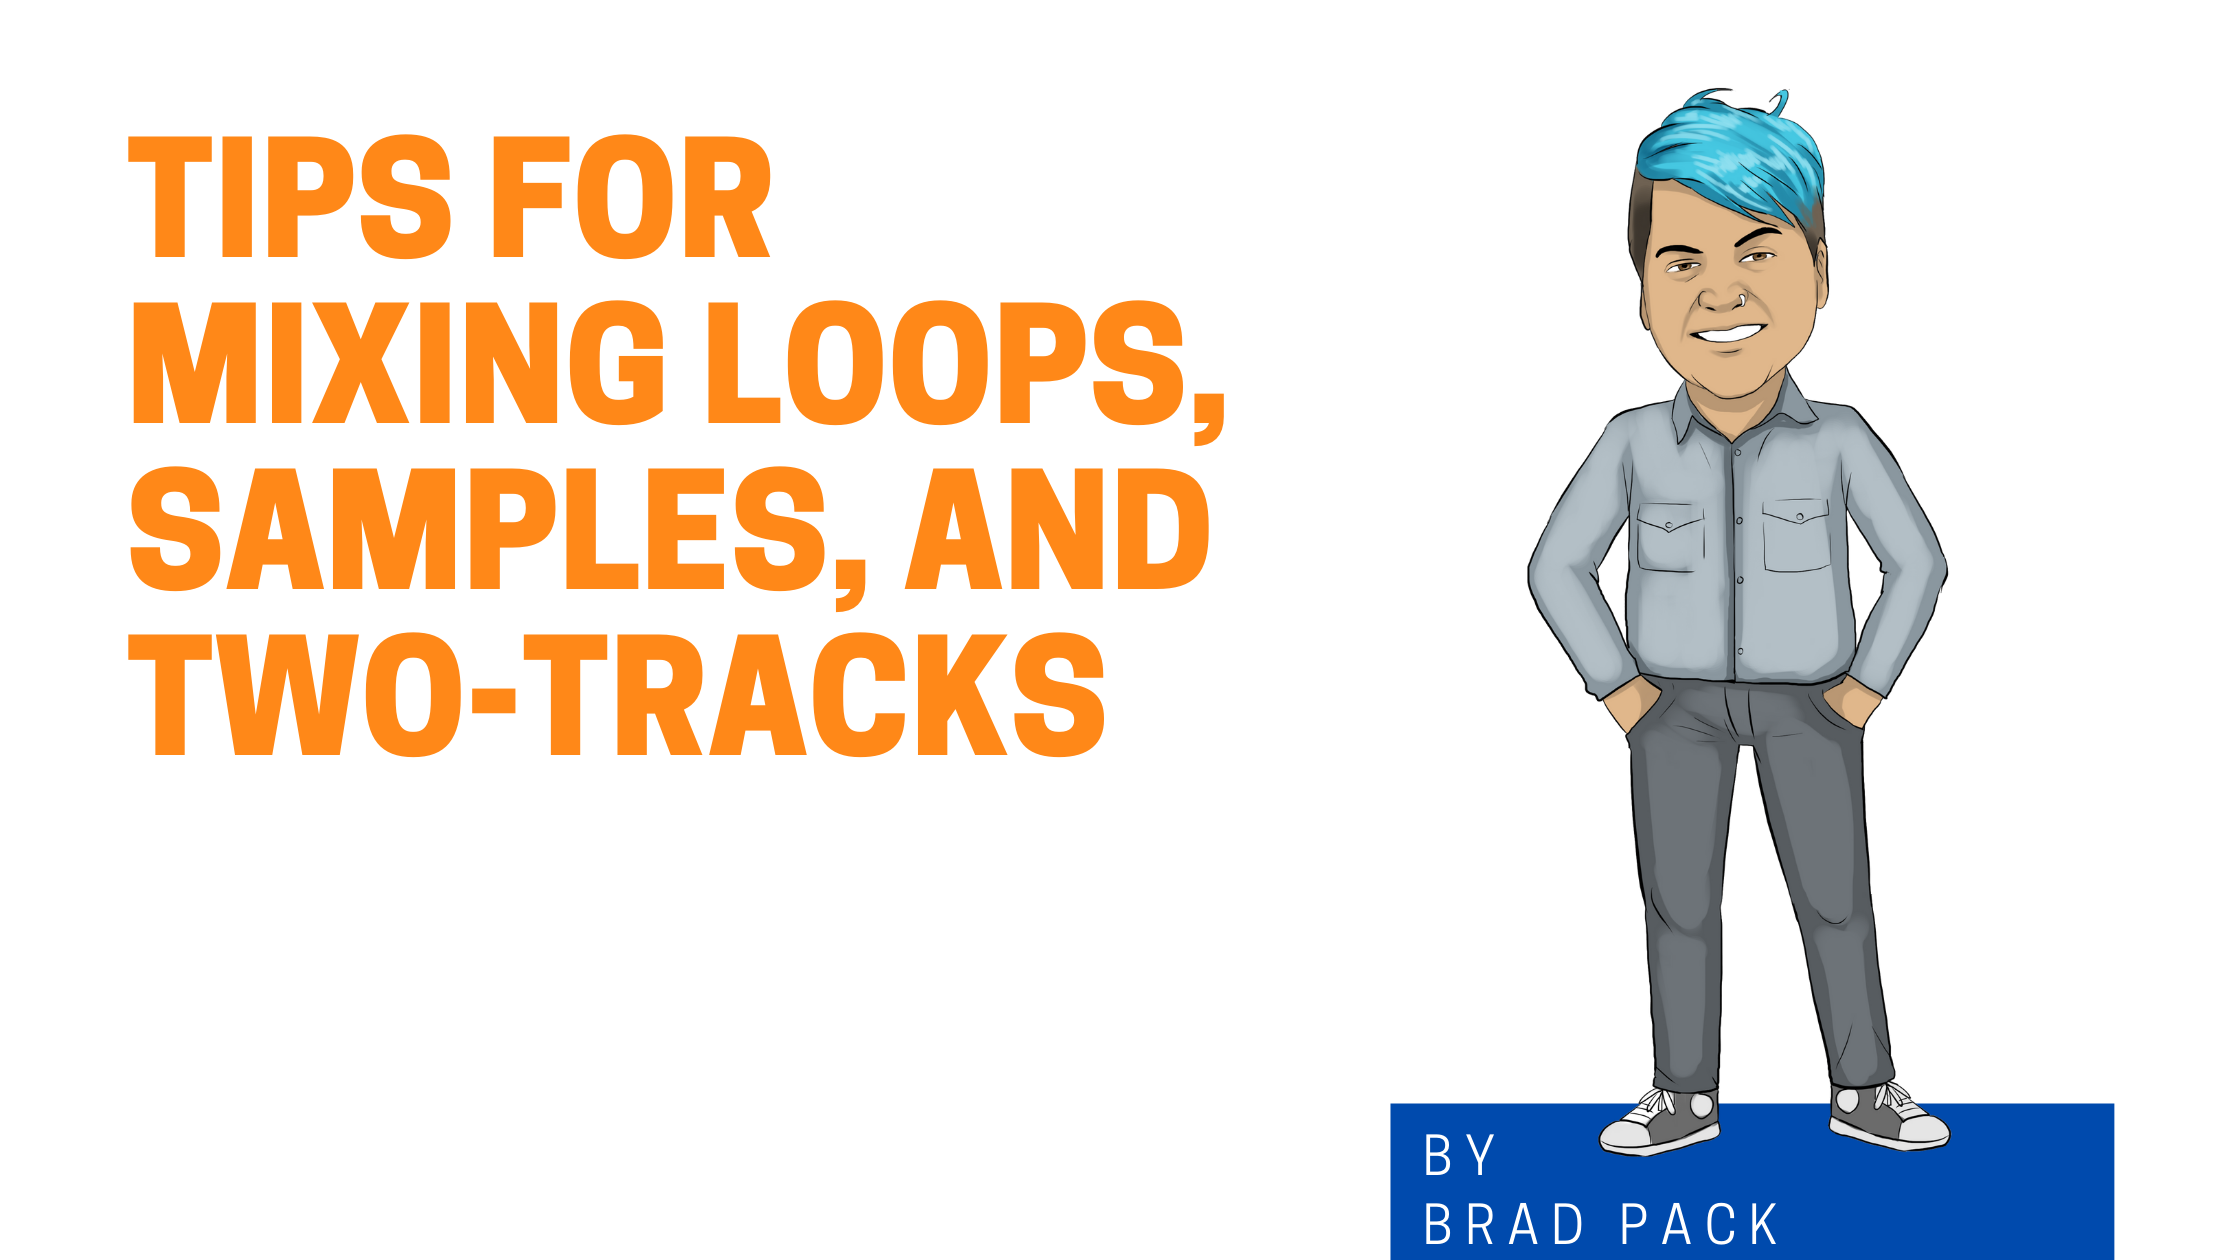 Tips for Mixing Loops, Samples and Two-Tracks Image Graphic